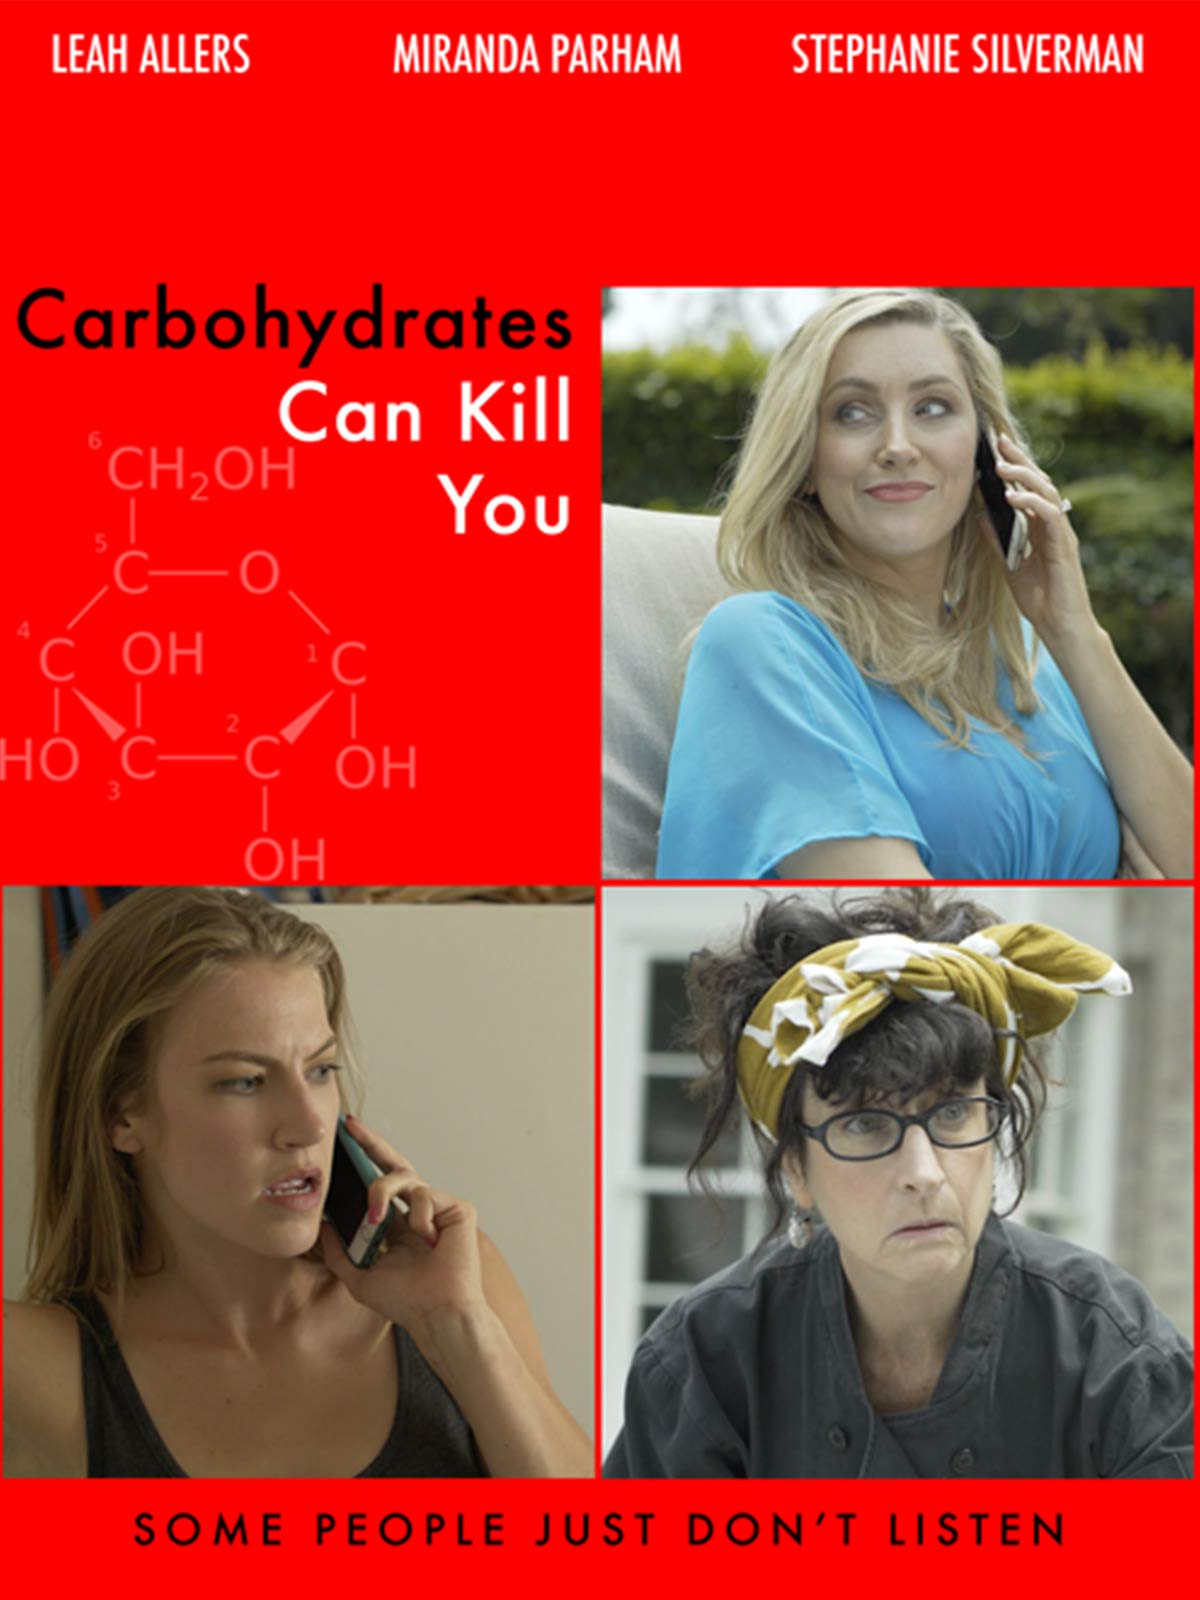 Carbohydrates Can Kill You